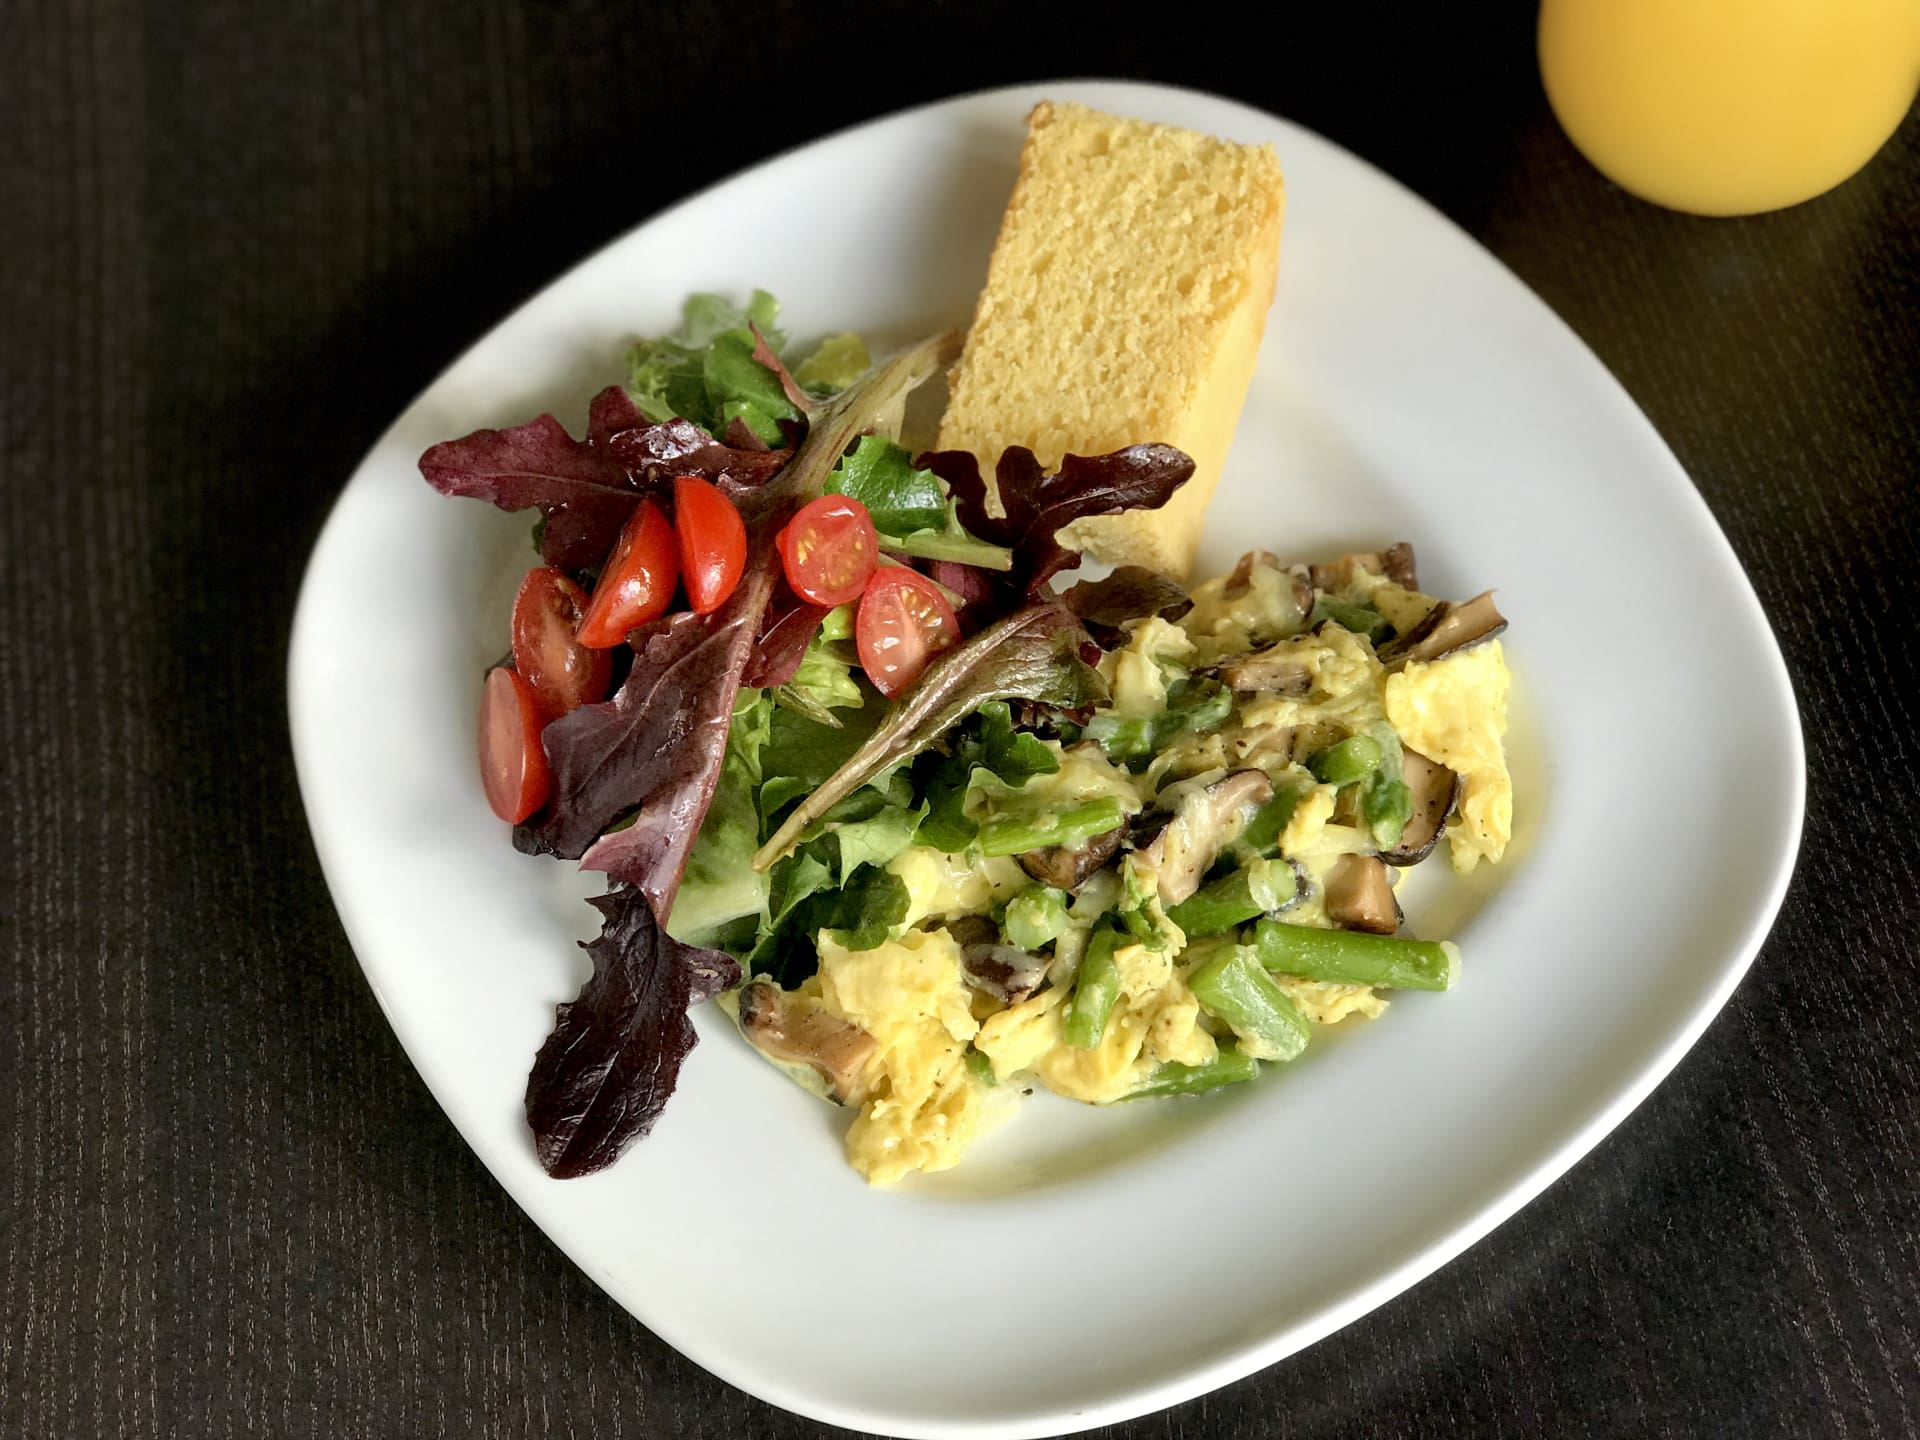 Wild Mushroom, Asparagus, Black Truffle Cheese Scramble w/ Baby Green Salad